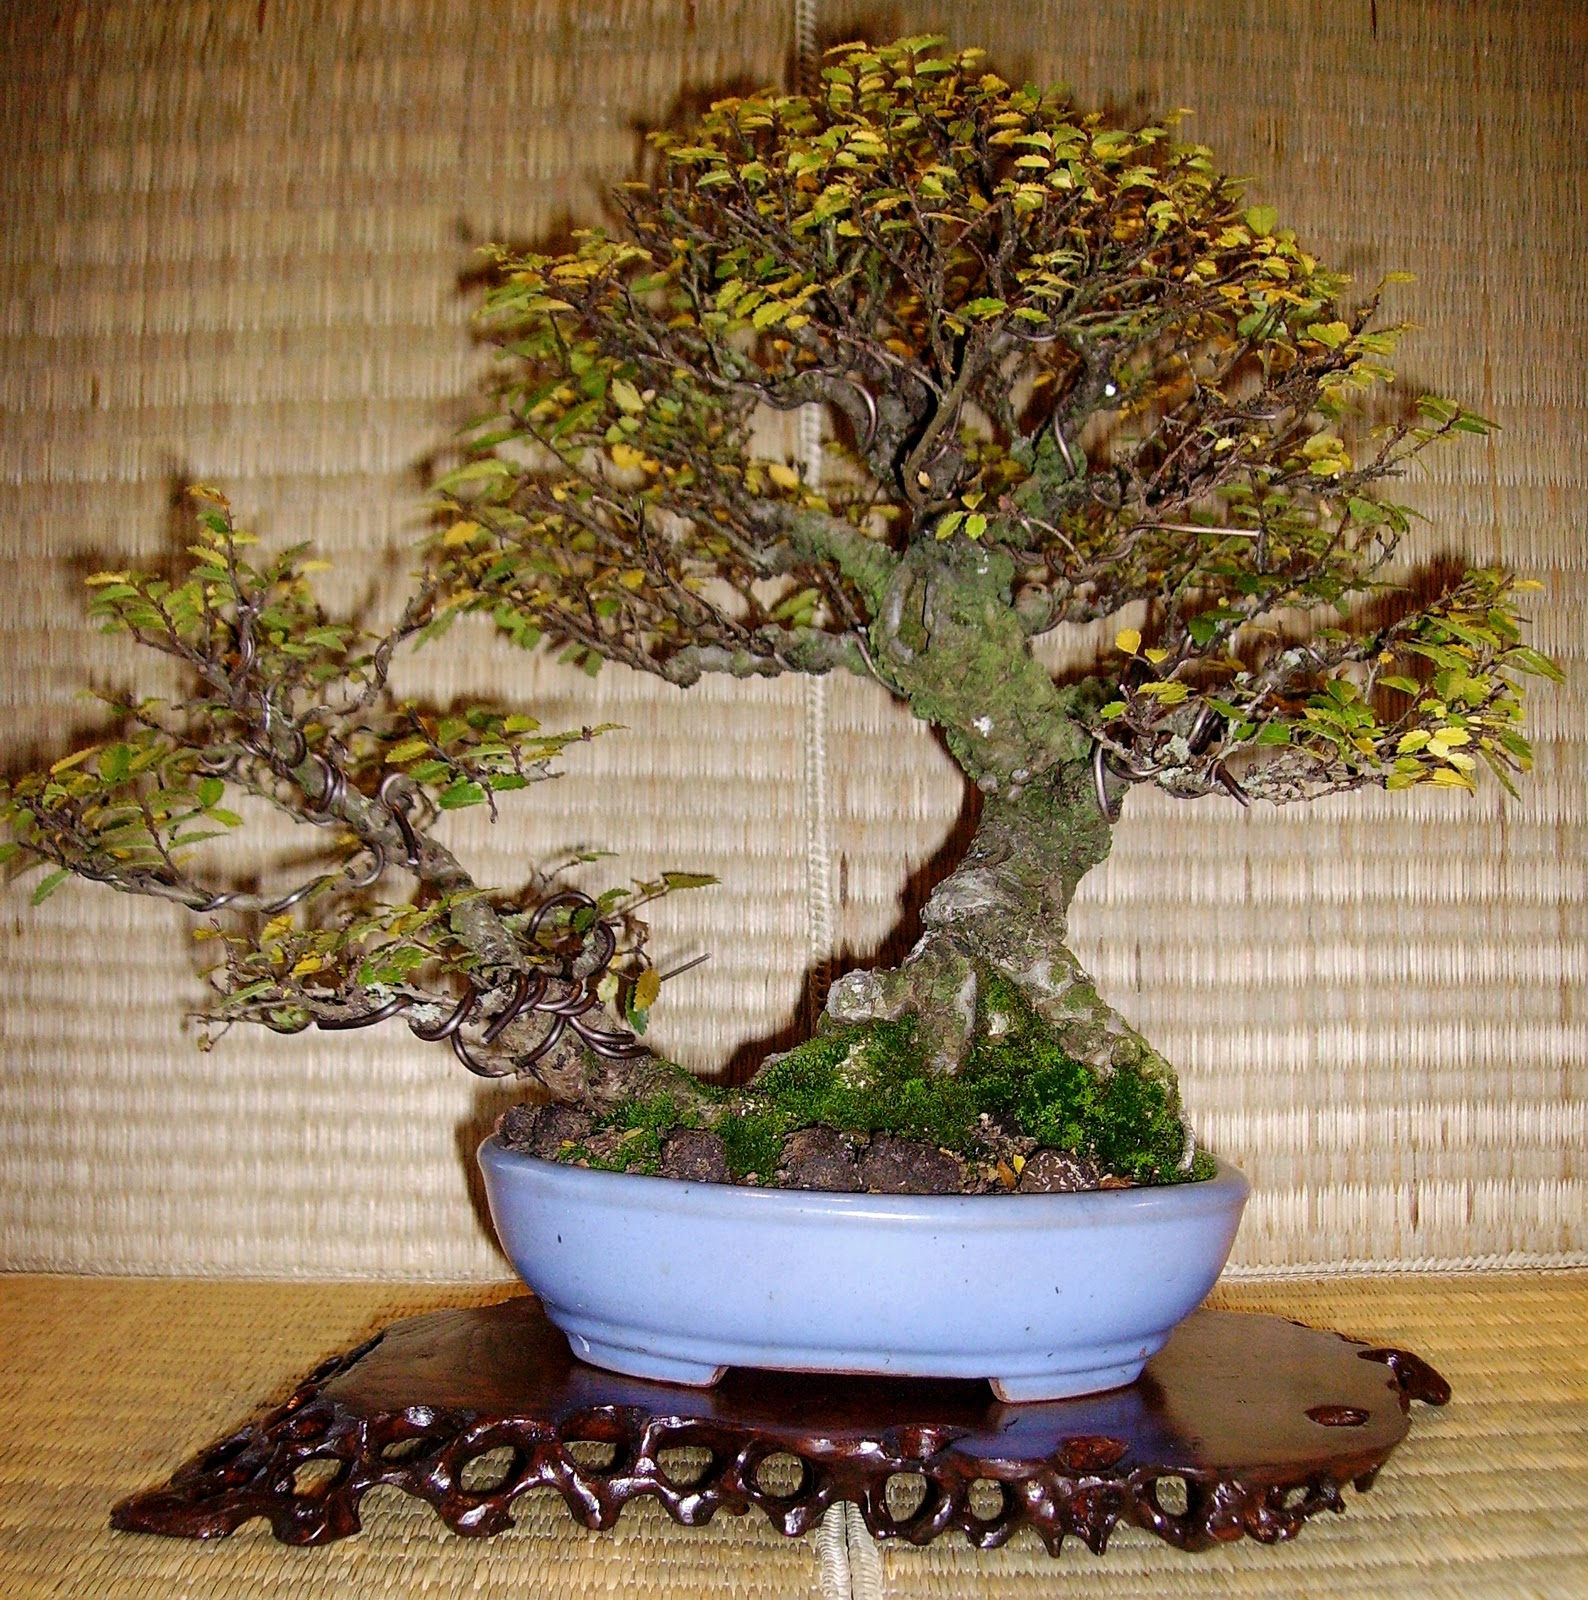 Bespoke Bonsai Stands Some Of My Shohin Trees Displayed